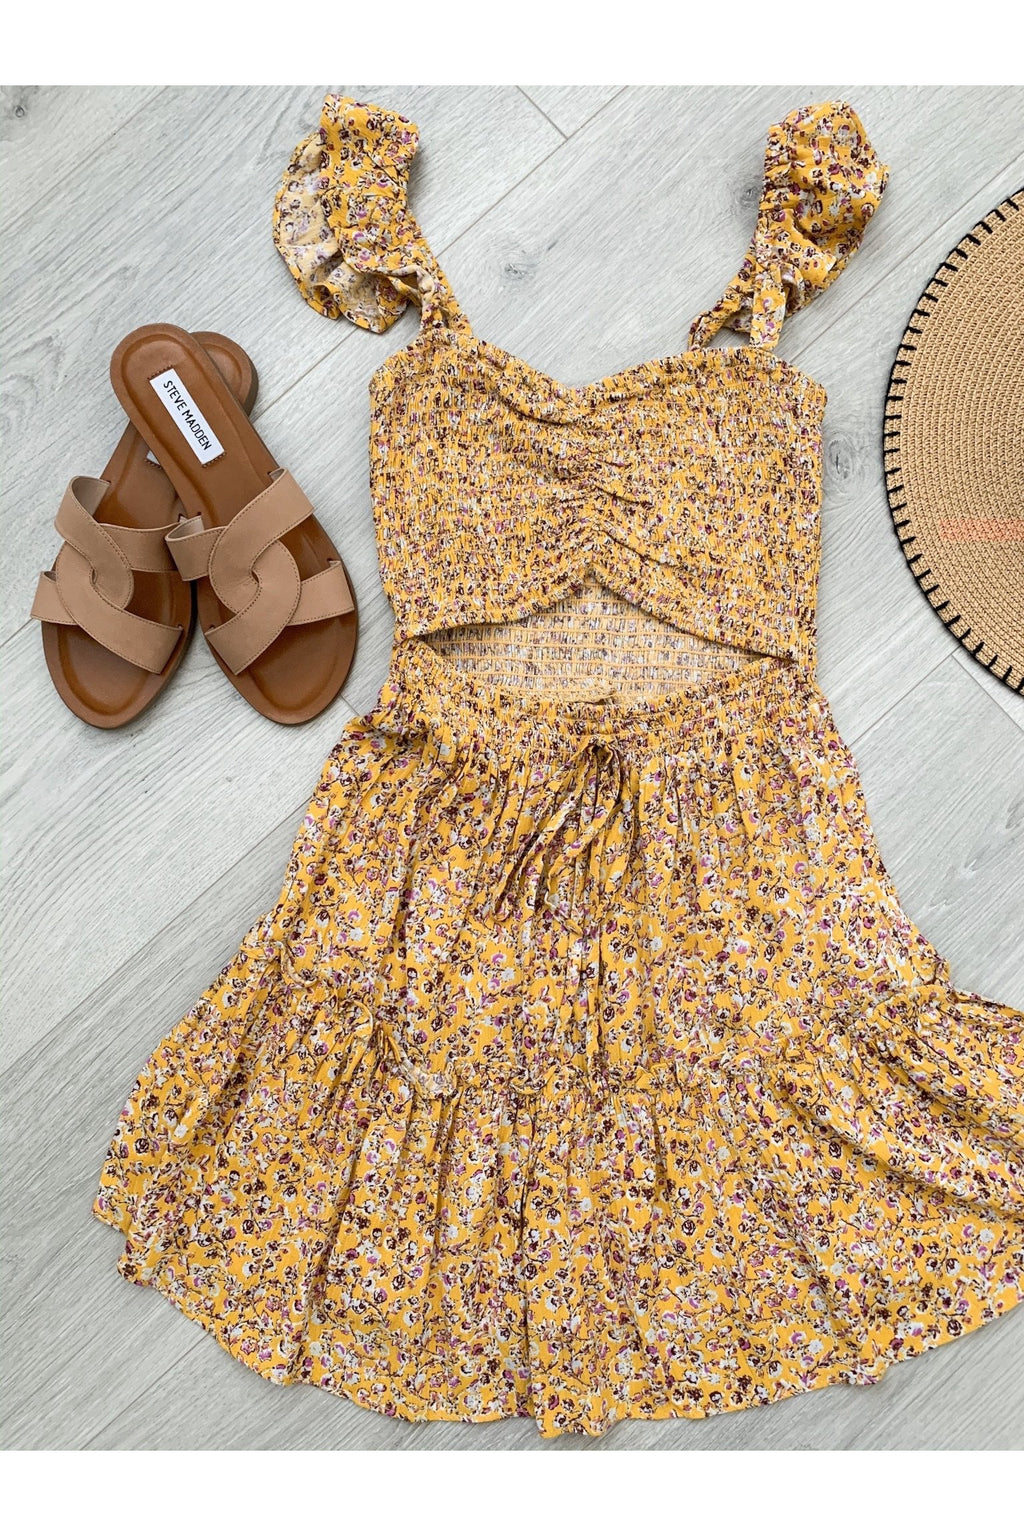 Sunny side up Dress